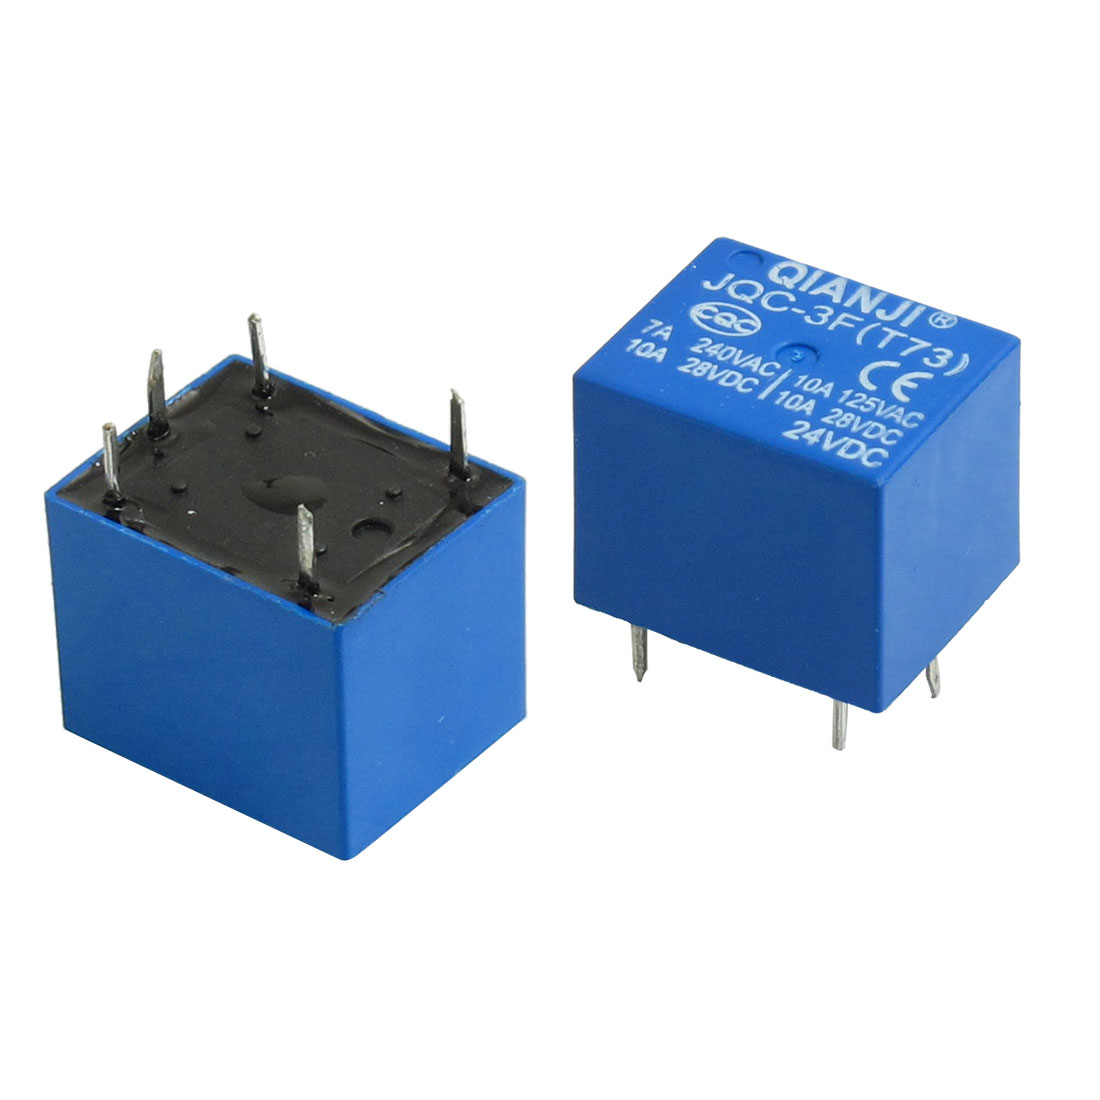 2 Pcs DC 24V Coil SPDT 5 Pin Mini Power Relays PCB Type JQC-3F(T73)